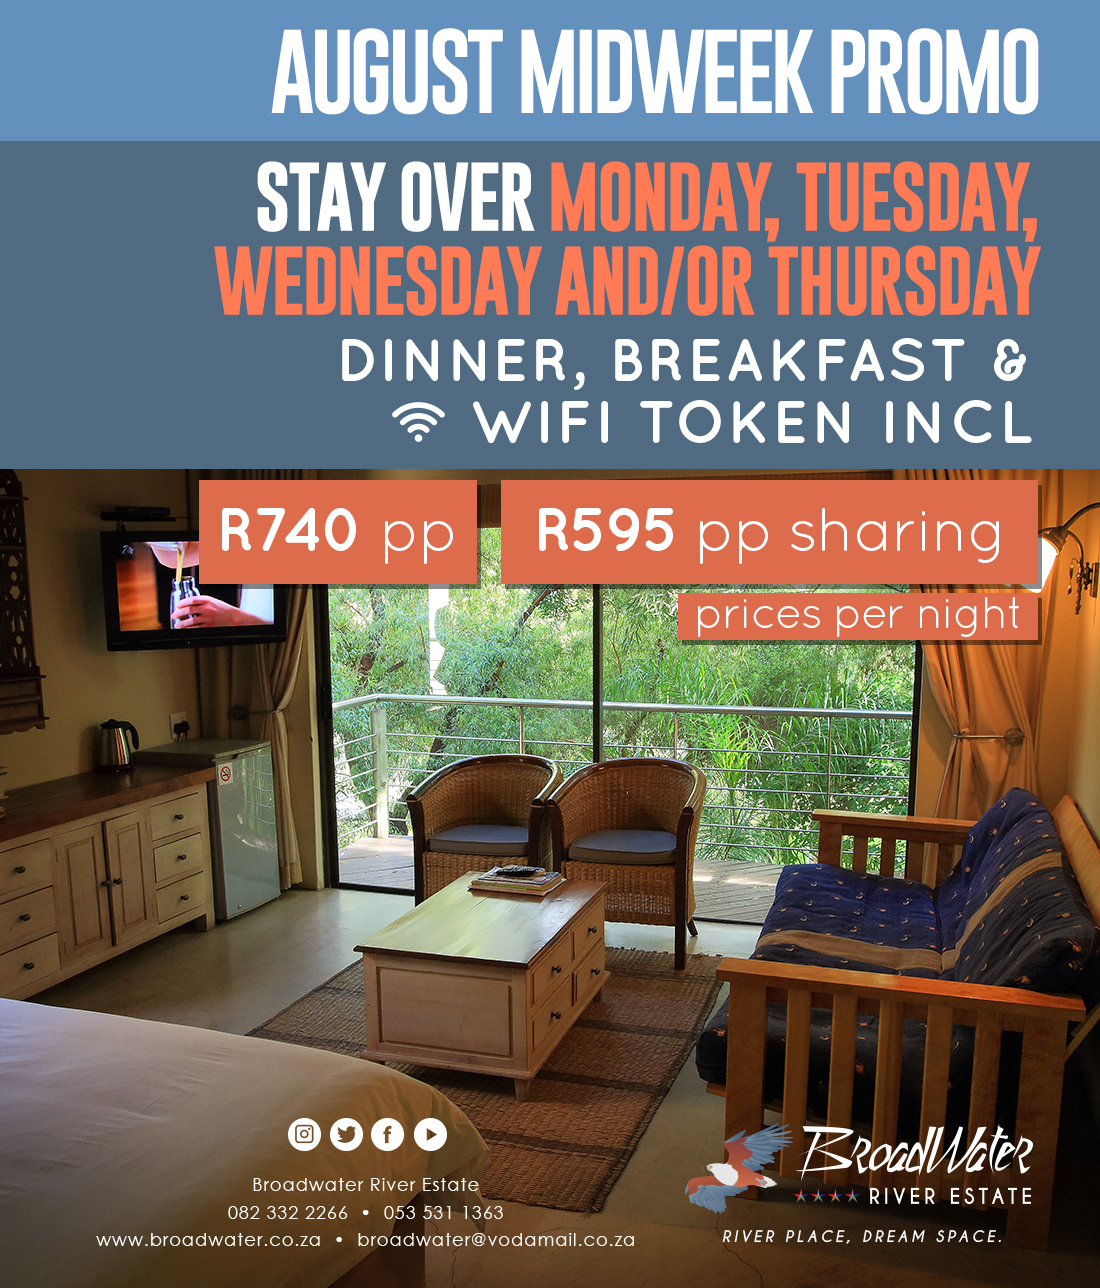 stay over monday, tuesday, wednesday and thursday wih dinner and wifi